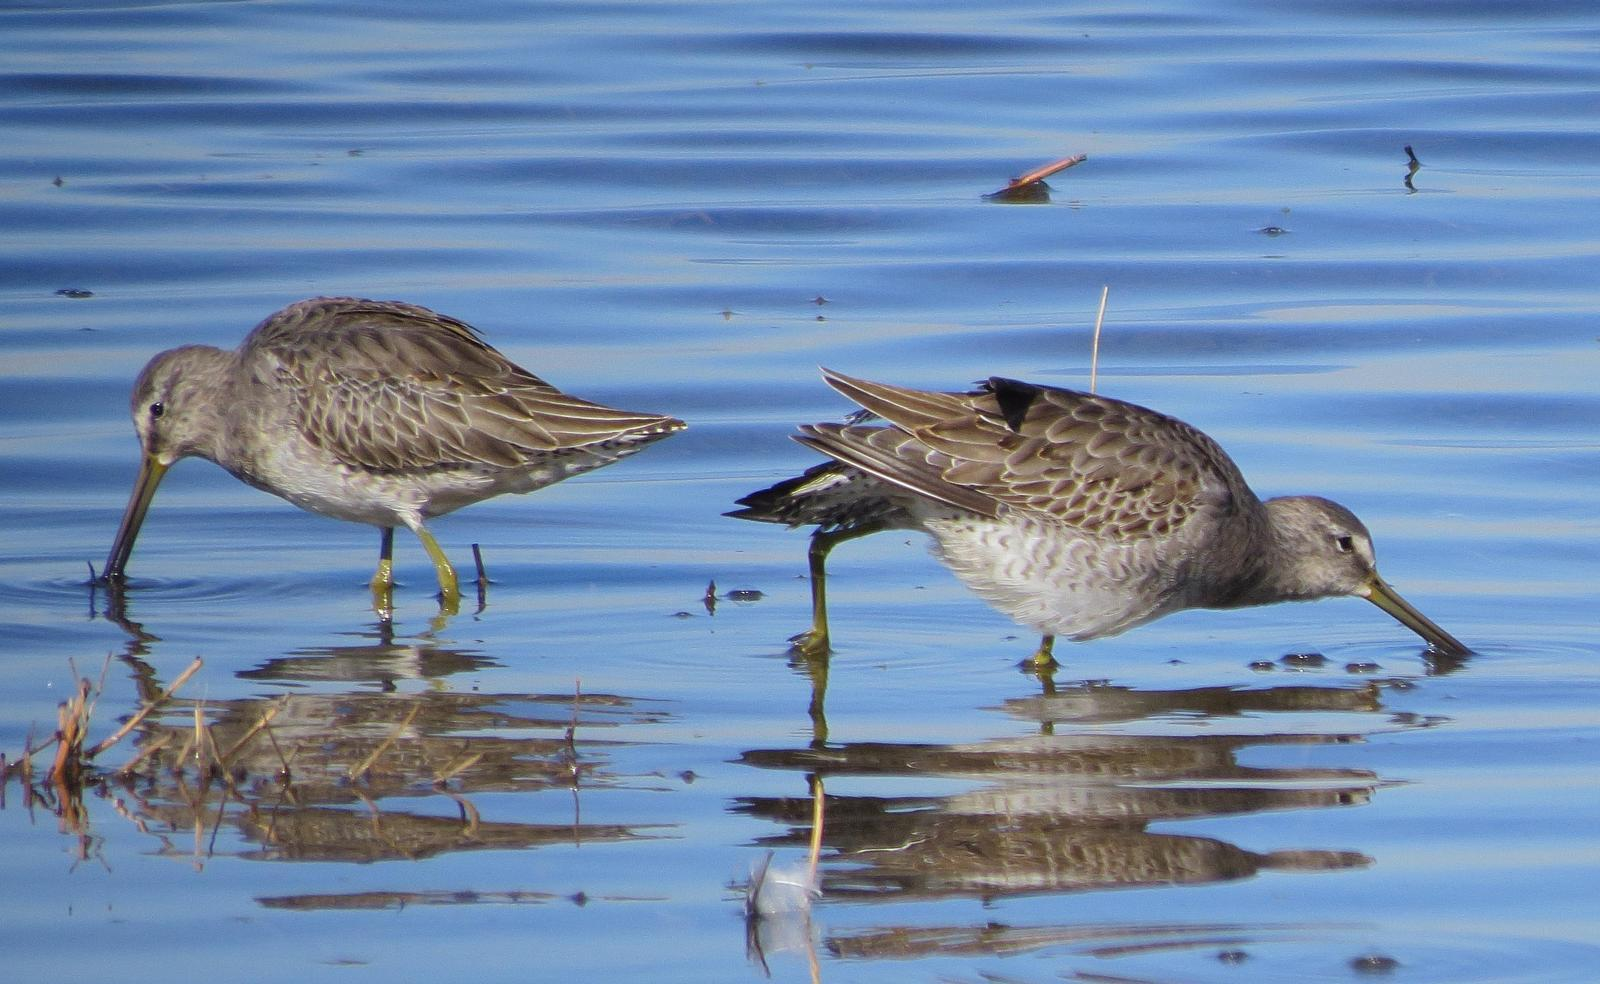 Long-billed Dowitcher Photo by Kent Jensen